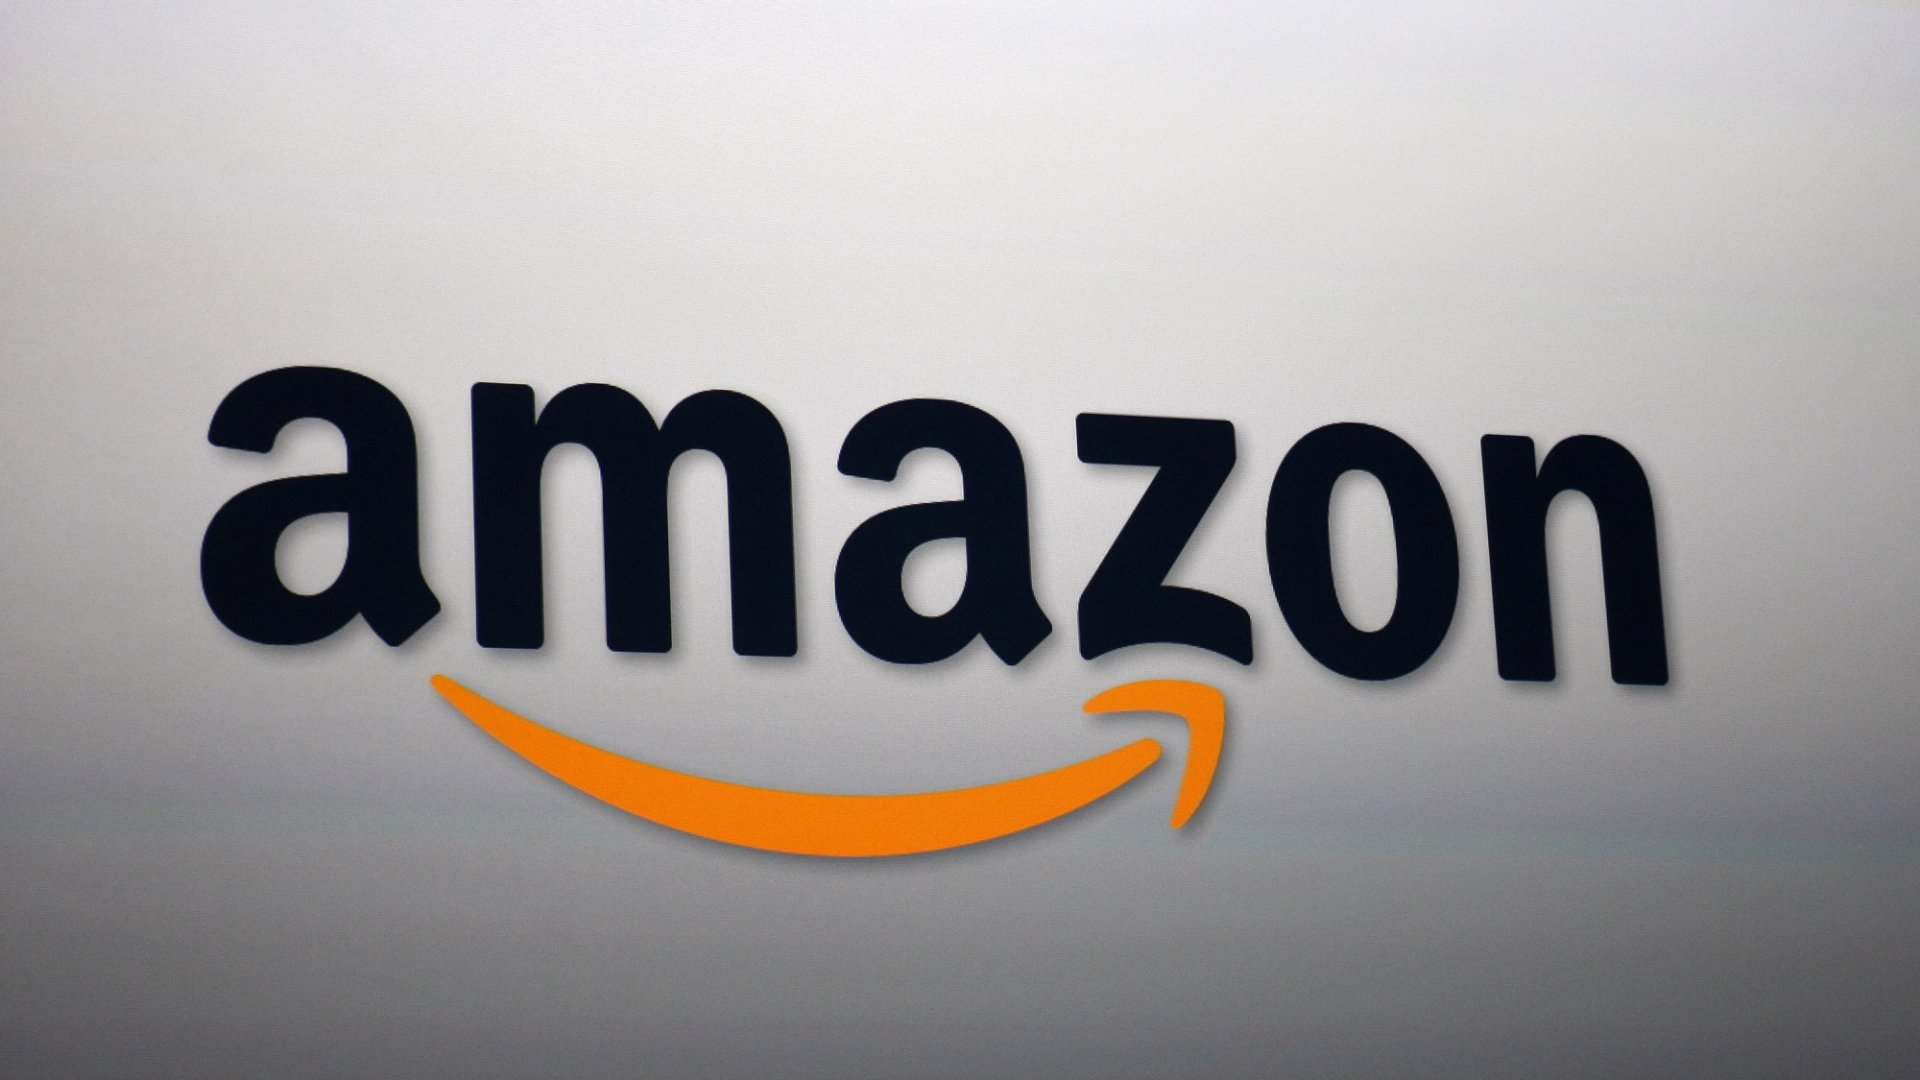 Amazon's Next Billion Dollar Opportunity Could Be Food